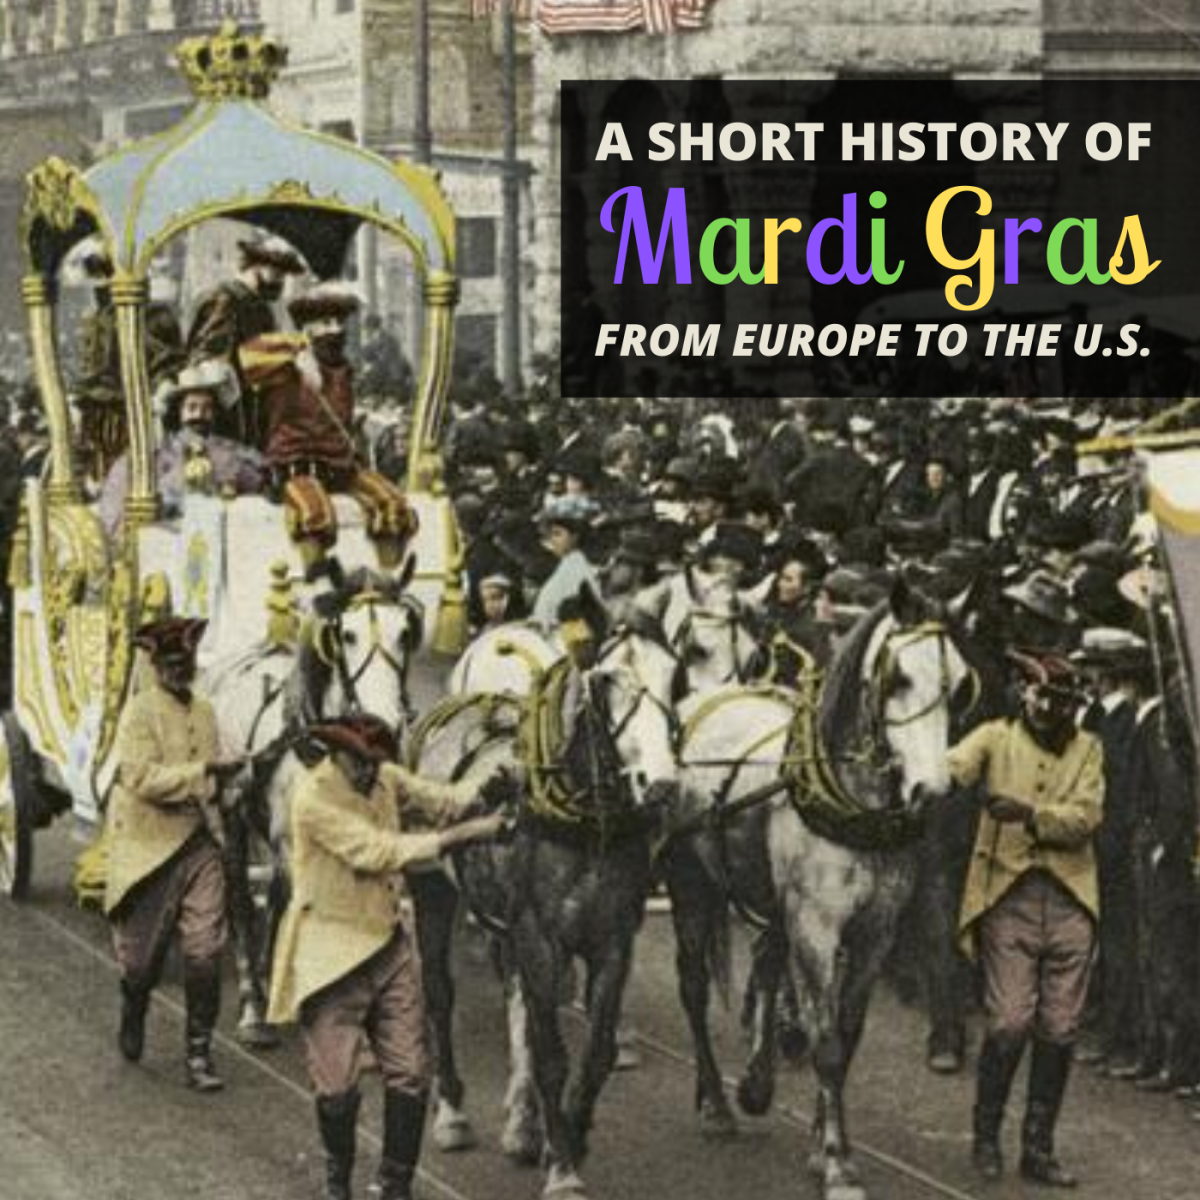 New Orleans' Mardi Gras celebrations draw visitors from around the globe, but did you know the first Fat Tuesday celebration in the U.S. was actually held in Alabama?